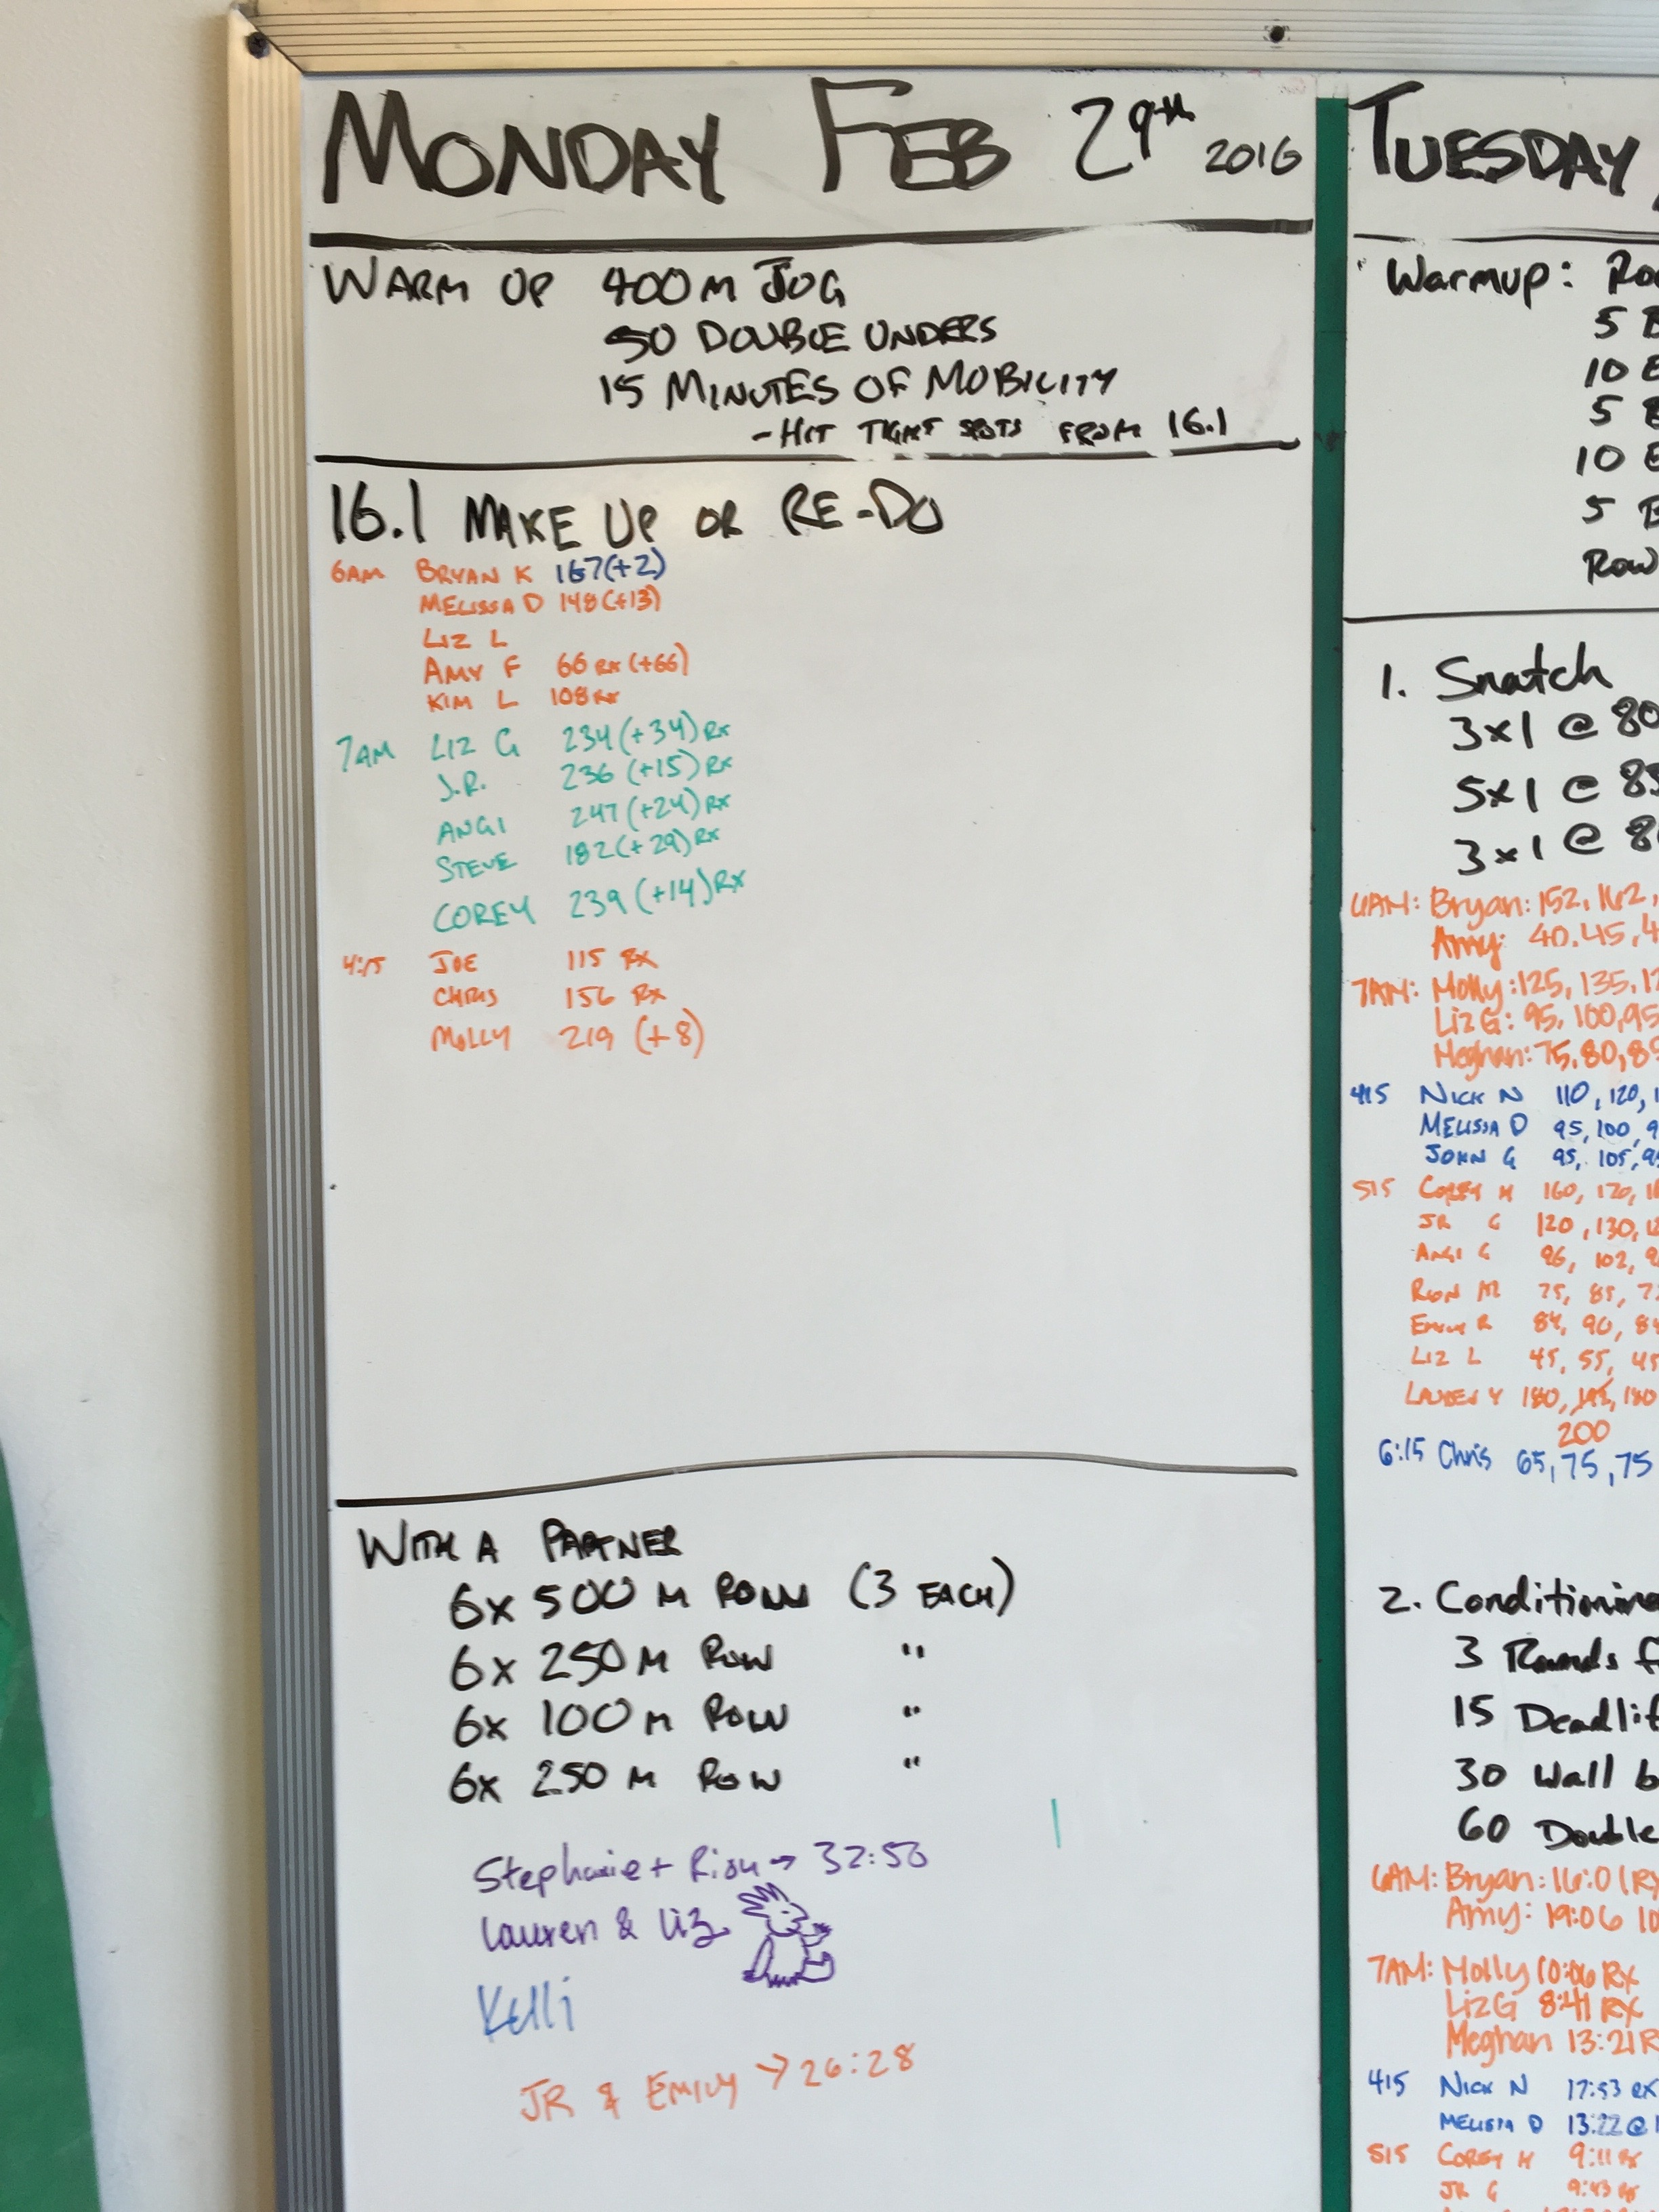 20160229 CrossFit Craft BENCHMARK OPEN 16.1 Overhead Walking Lunges Bar Facing Burpees Chest to Bar Pull Ups Row